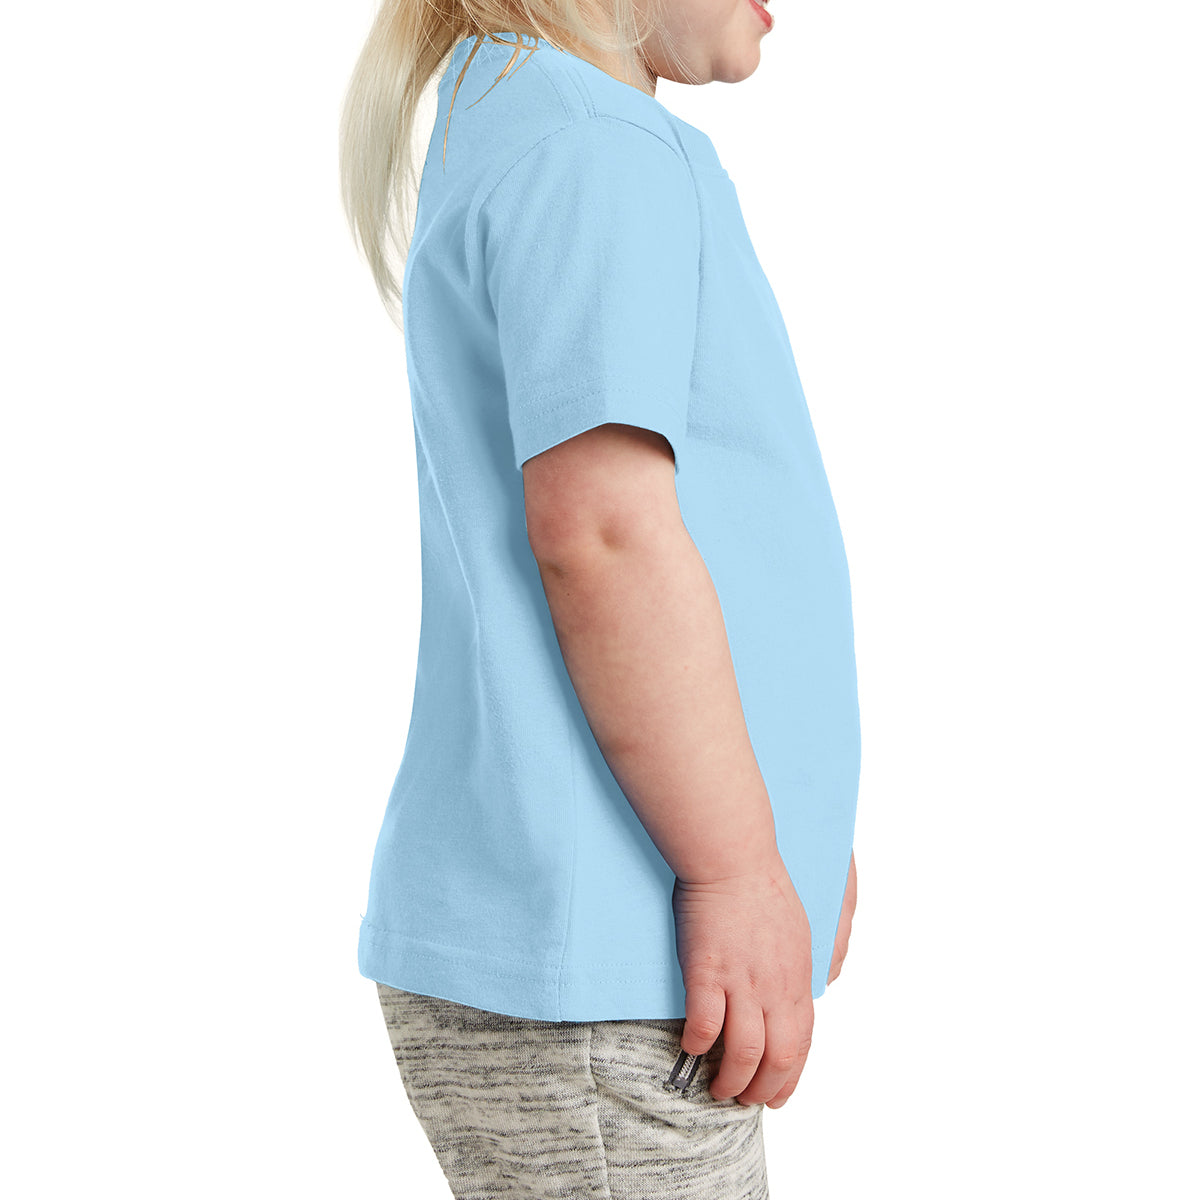 Toddler Fine Jersey Tee - Light Blue